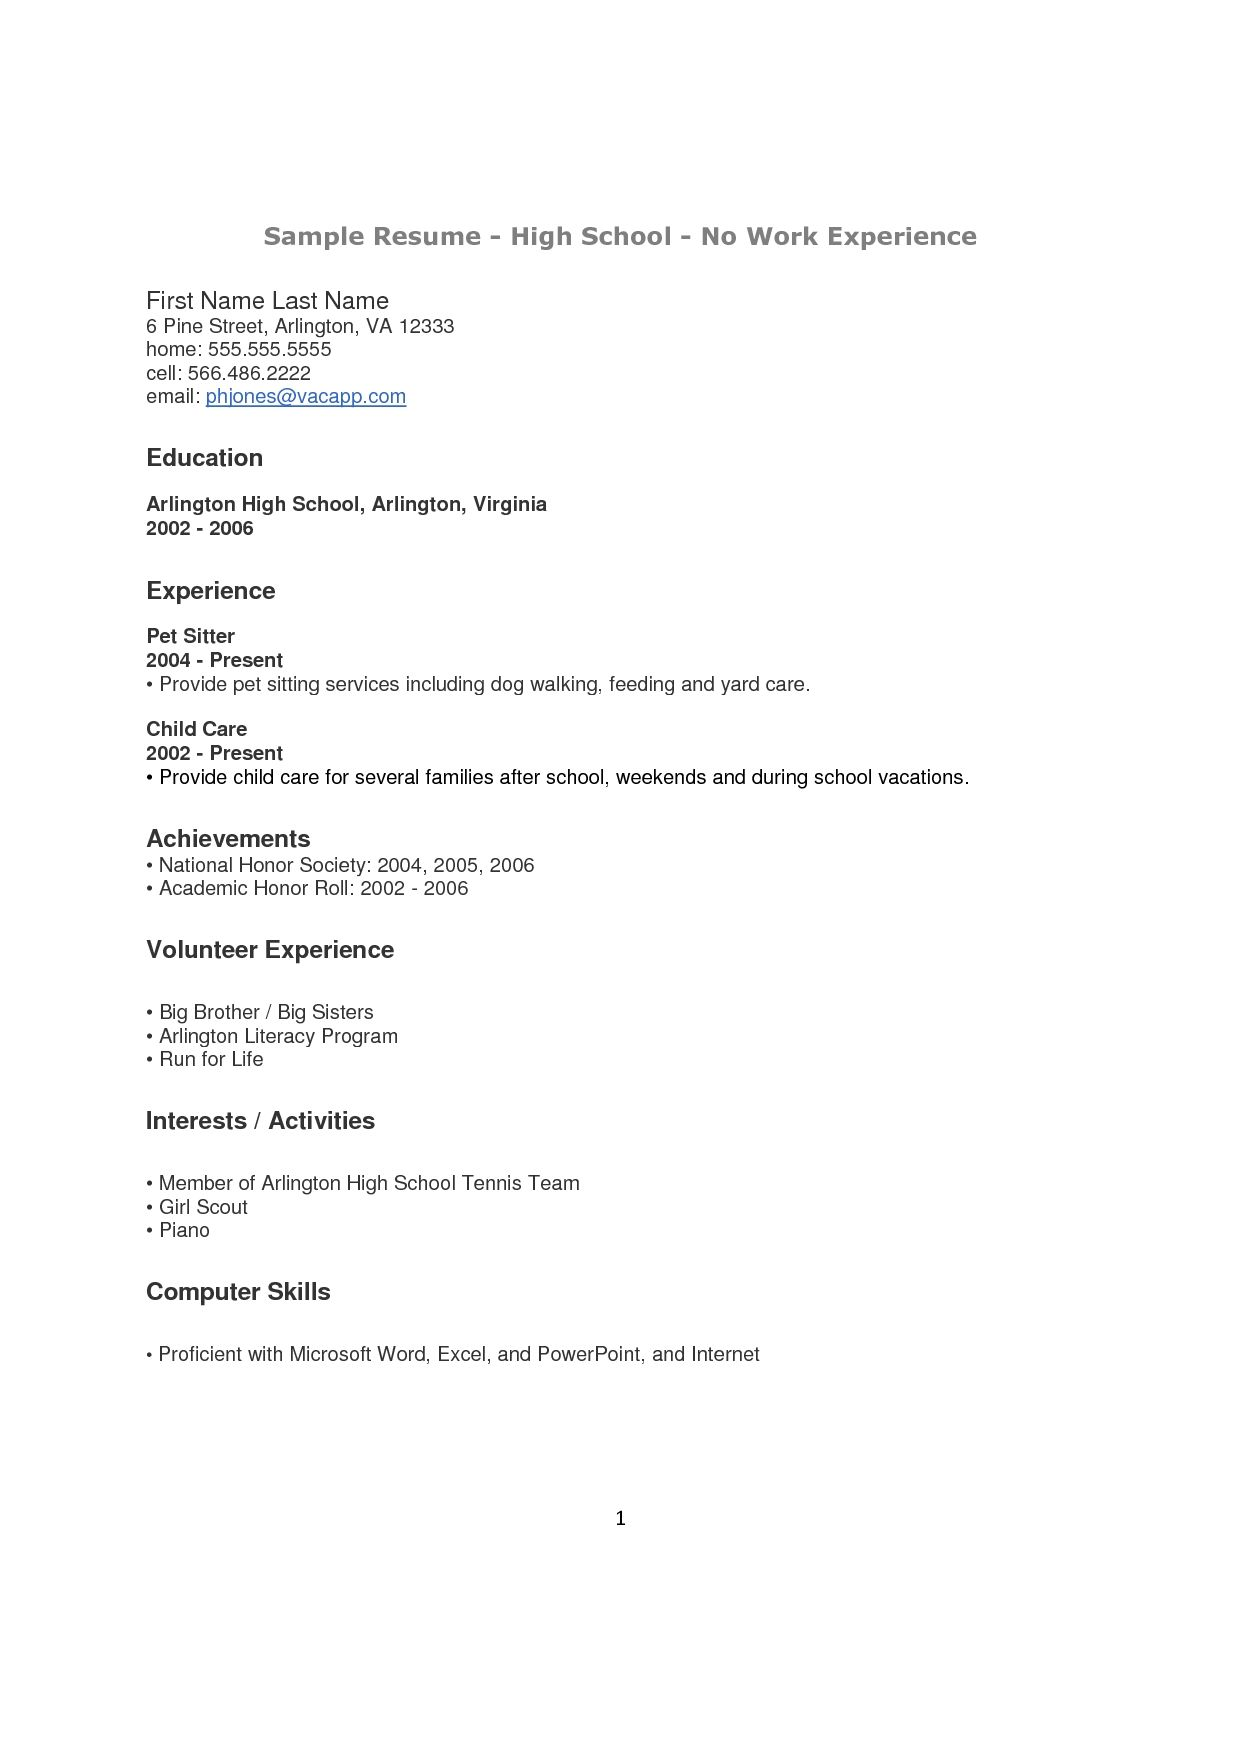 Resume CV Cover Letter 3 Sample Resumes 3 Resume CV Cover